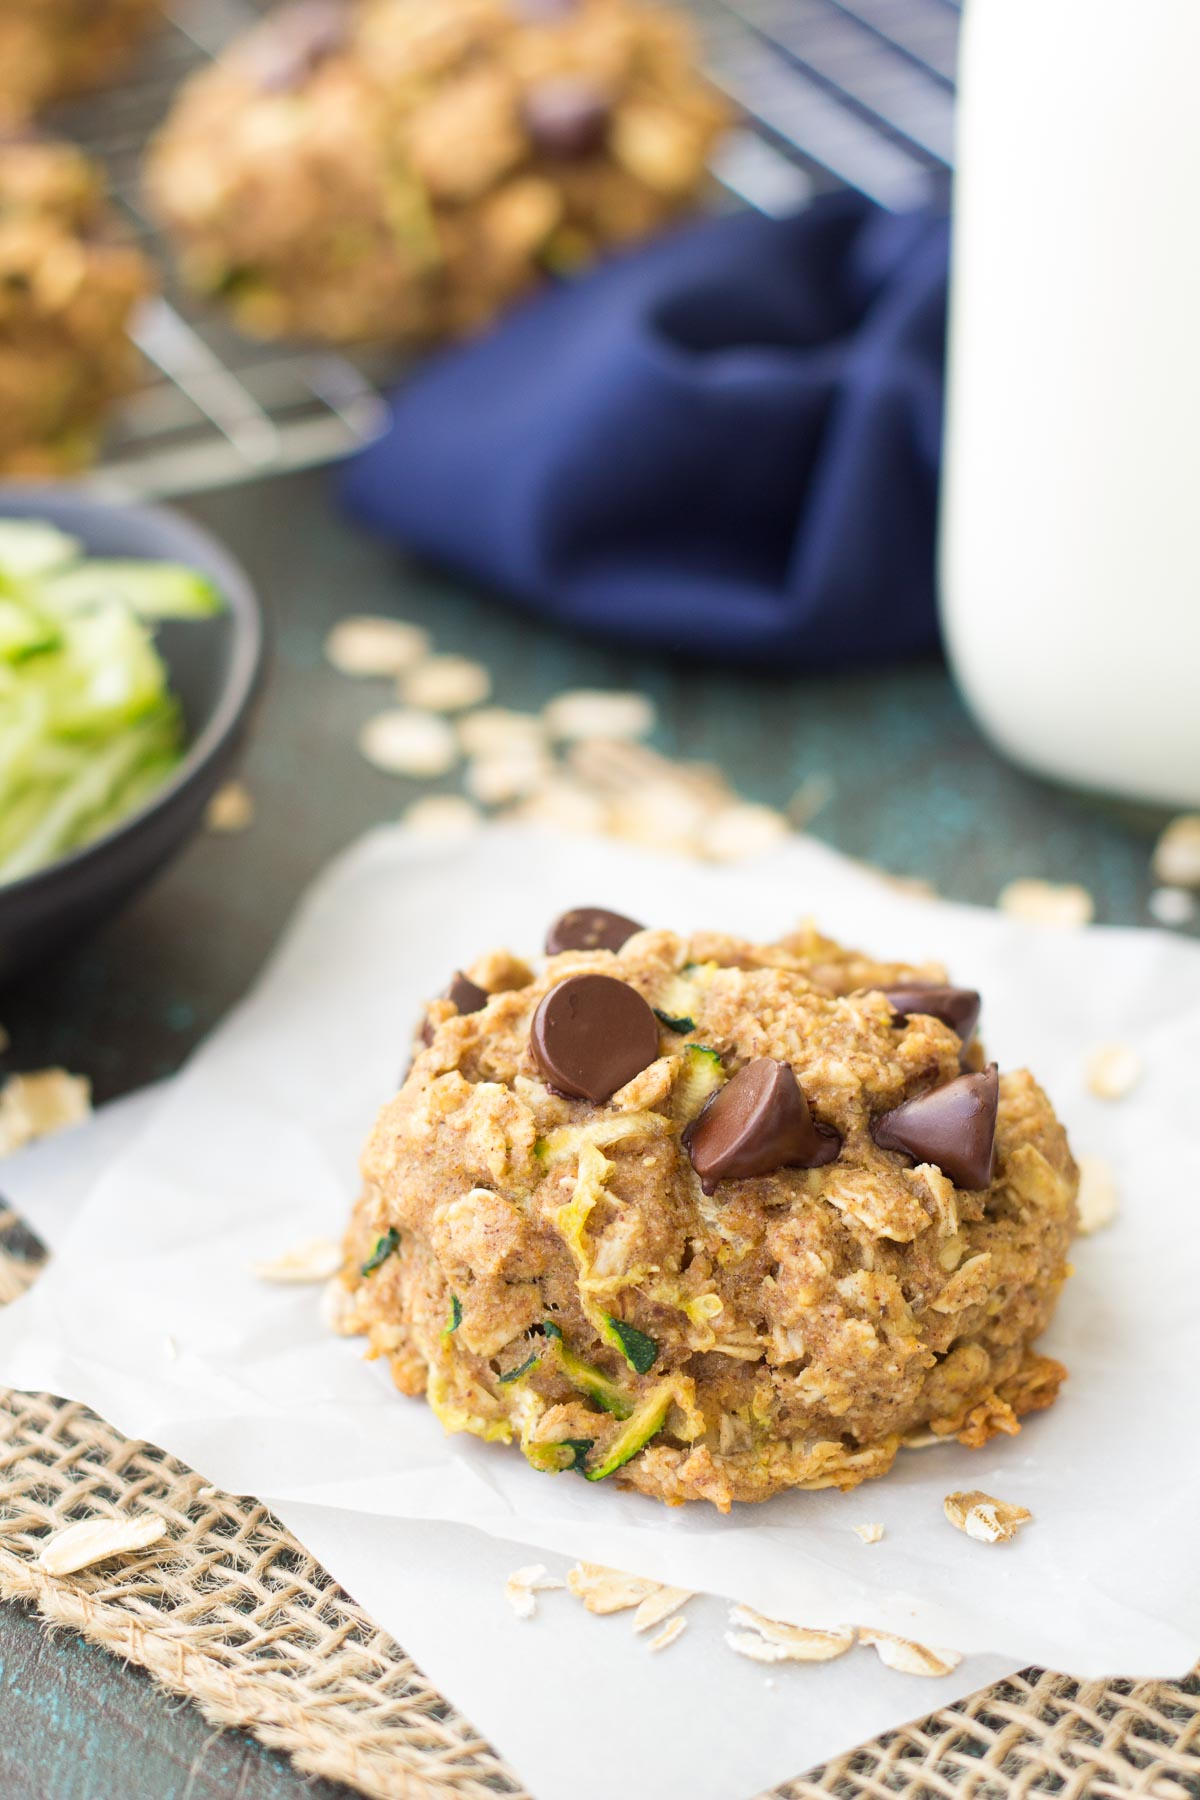 Zucchini Cookies with chocolate chips